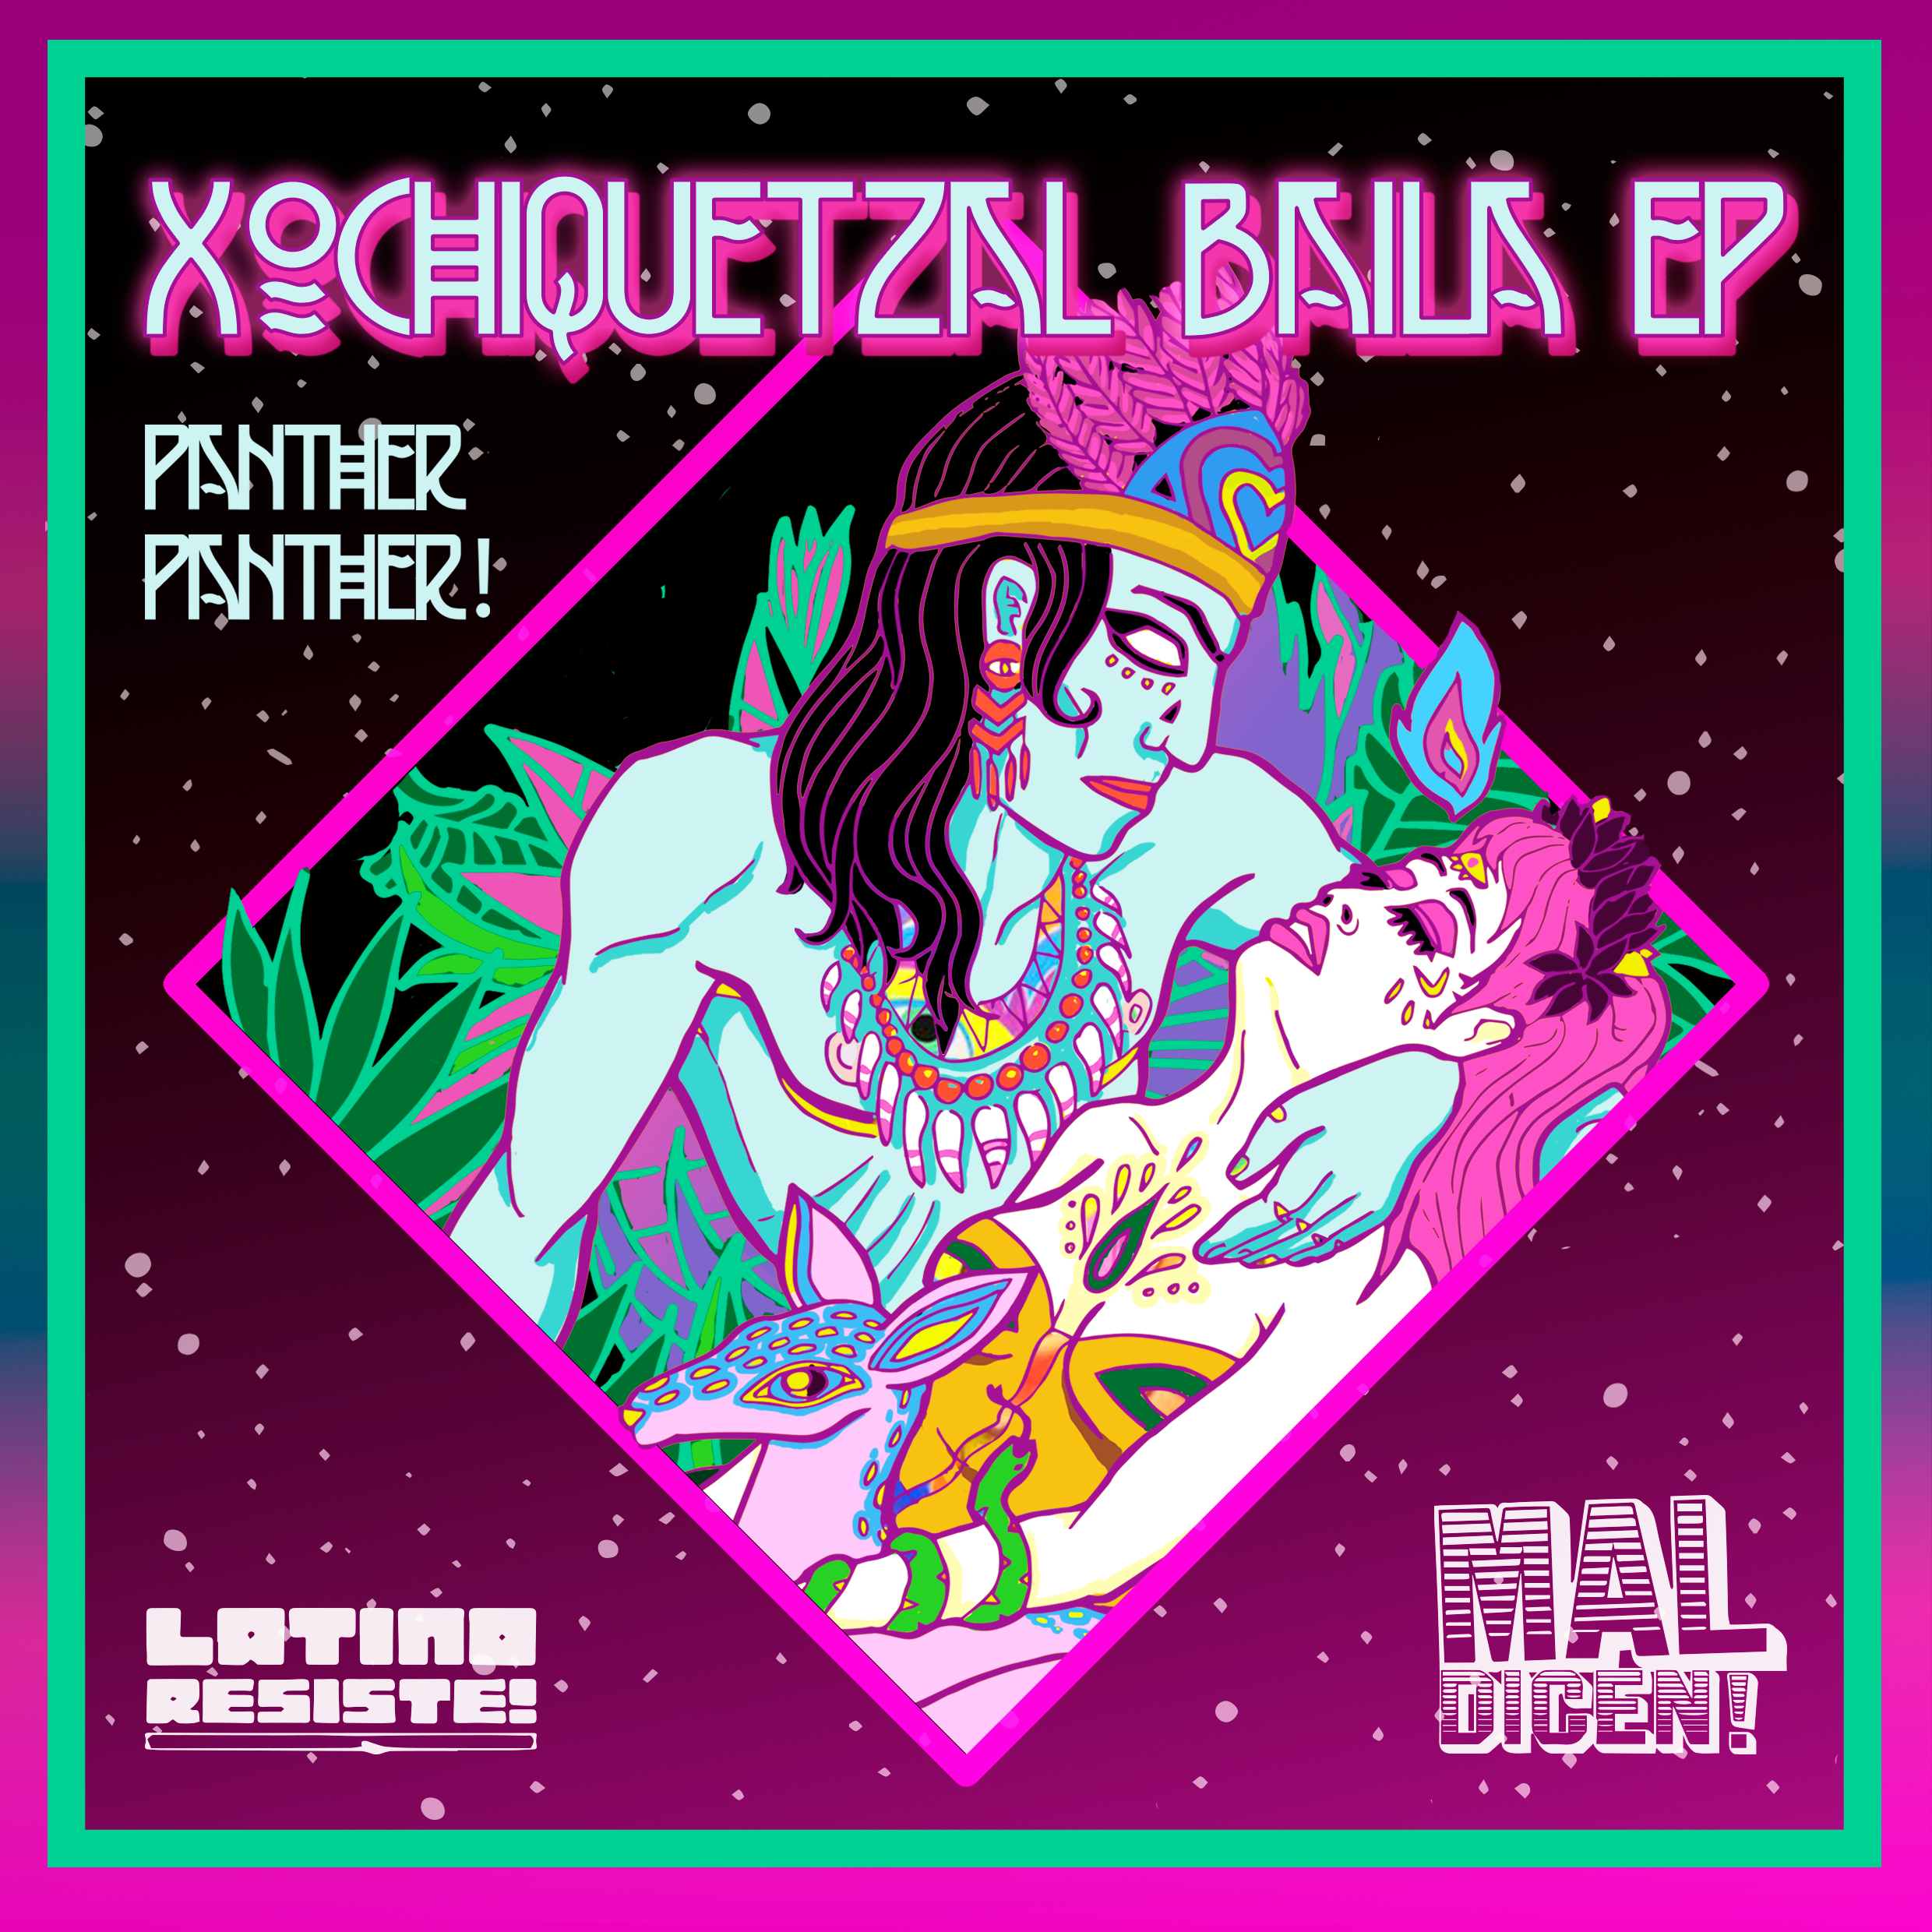 Panther Panther unveils a truly amazing musical jewel on his latest release. Ethnic Music meets Global bass. Enjoy it for FREE or pay what you can.